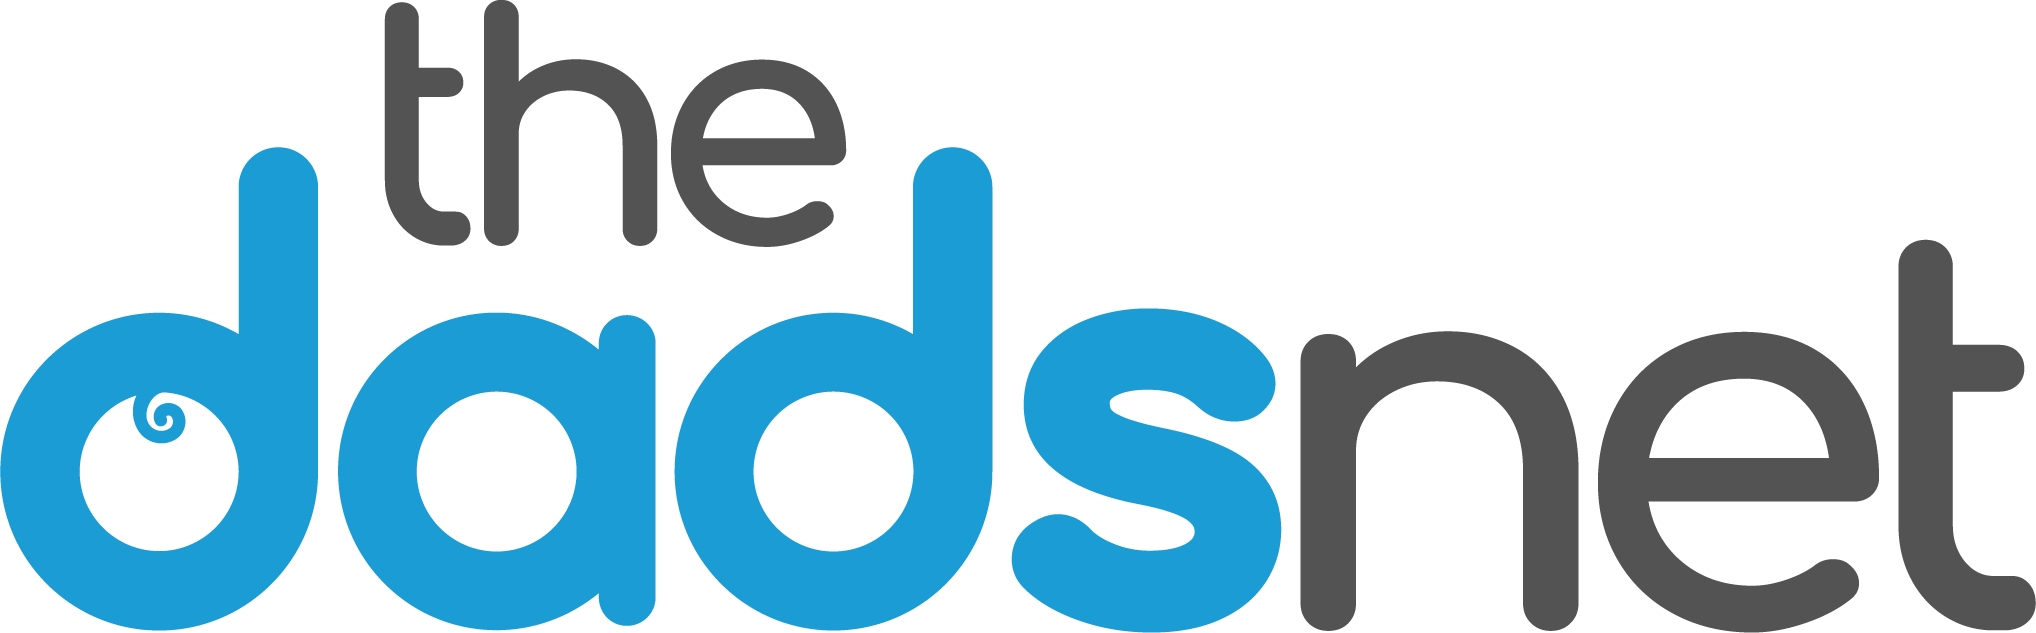 TheDadsNet | The leading network connecting local Dads worldwide